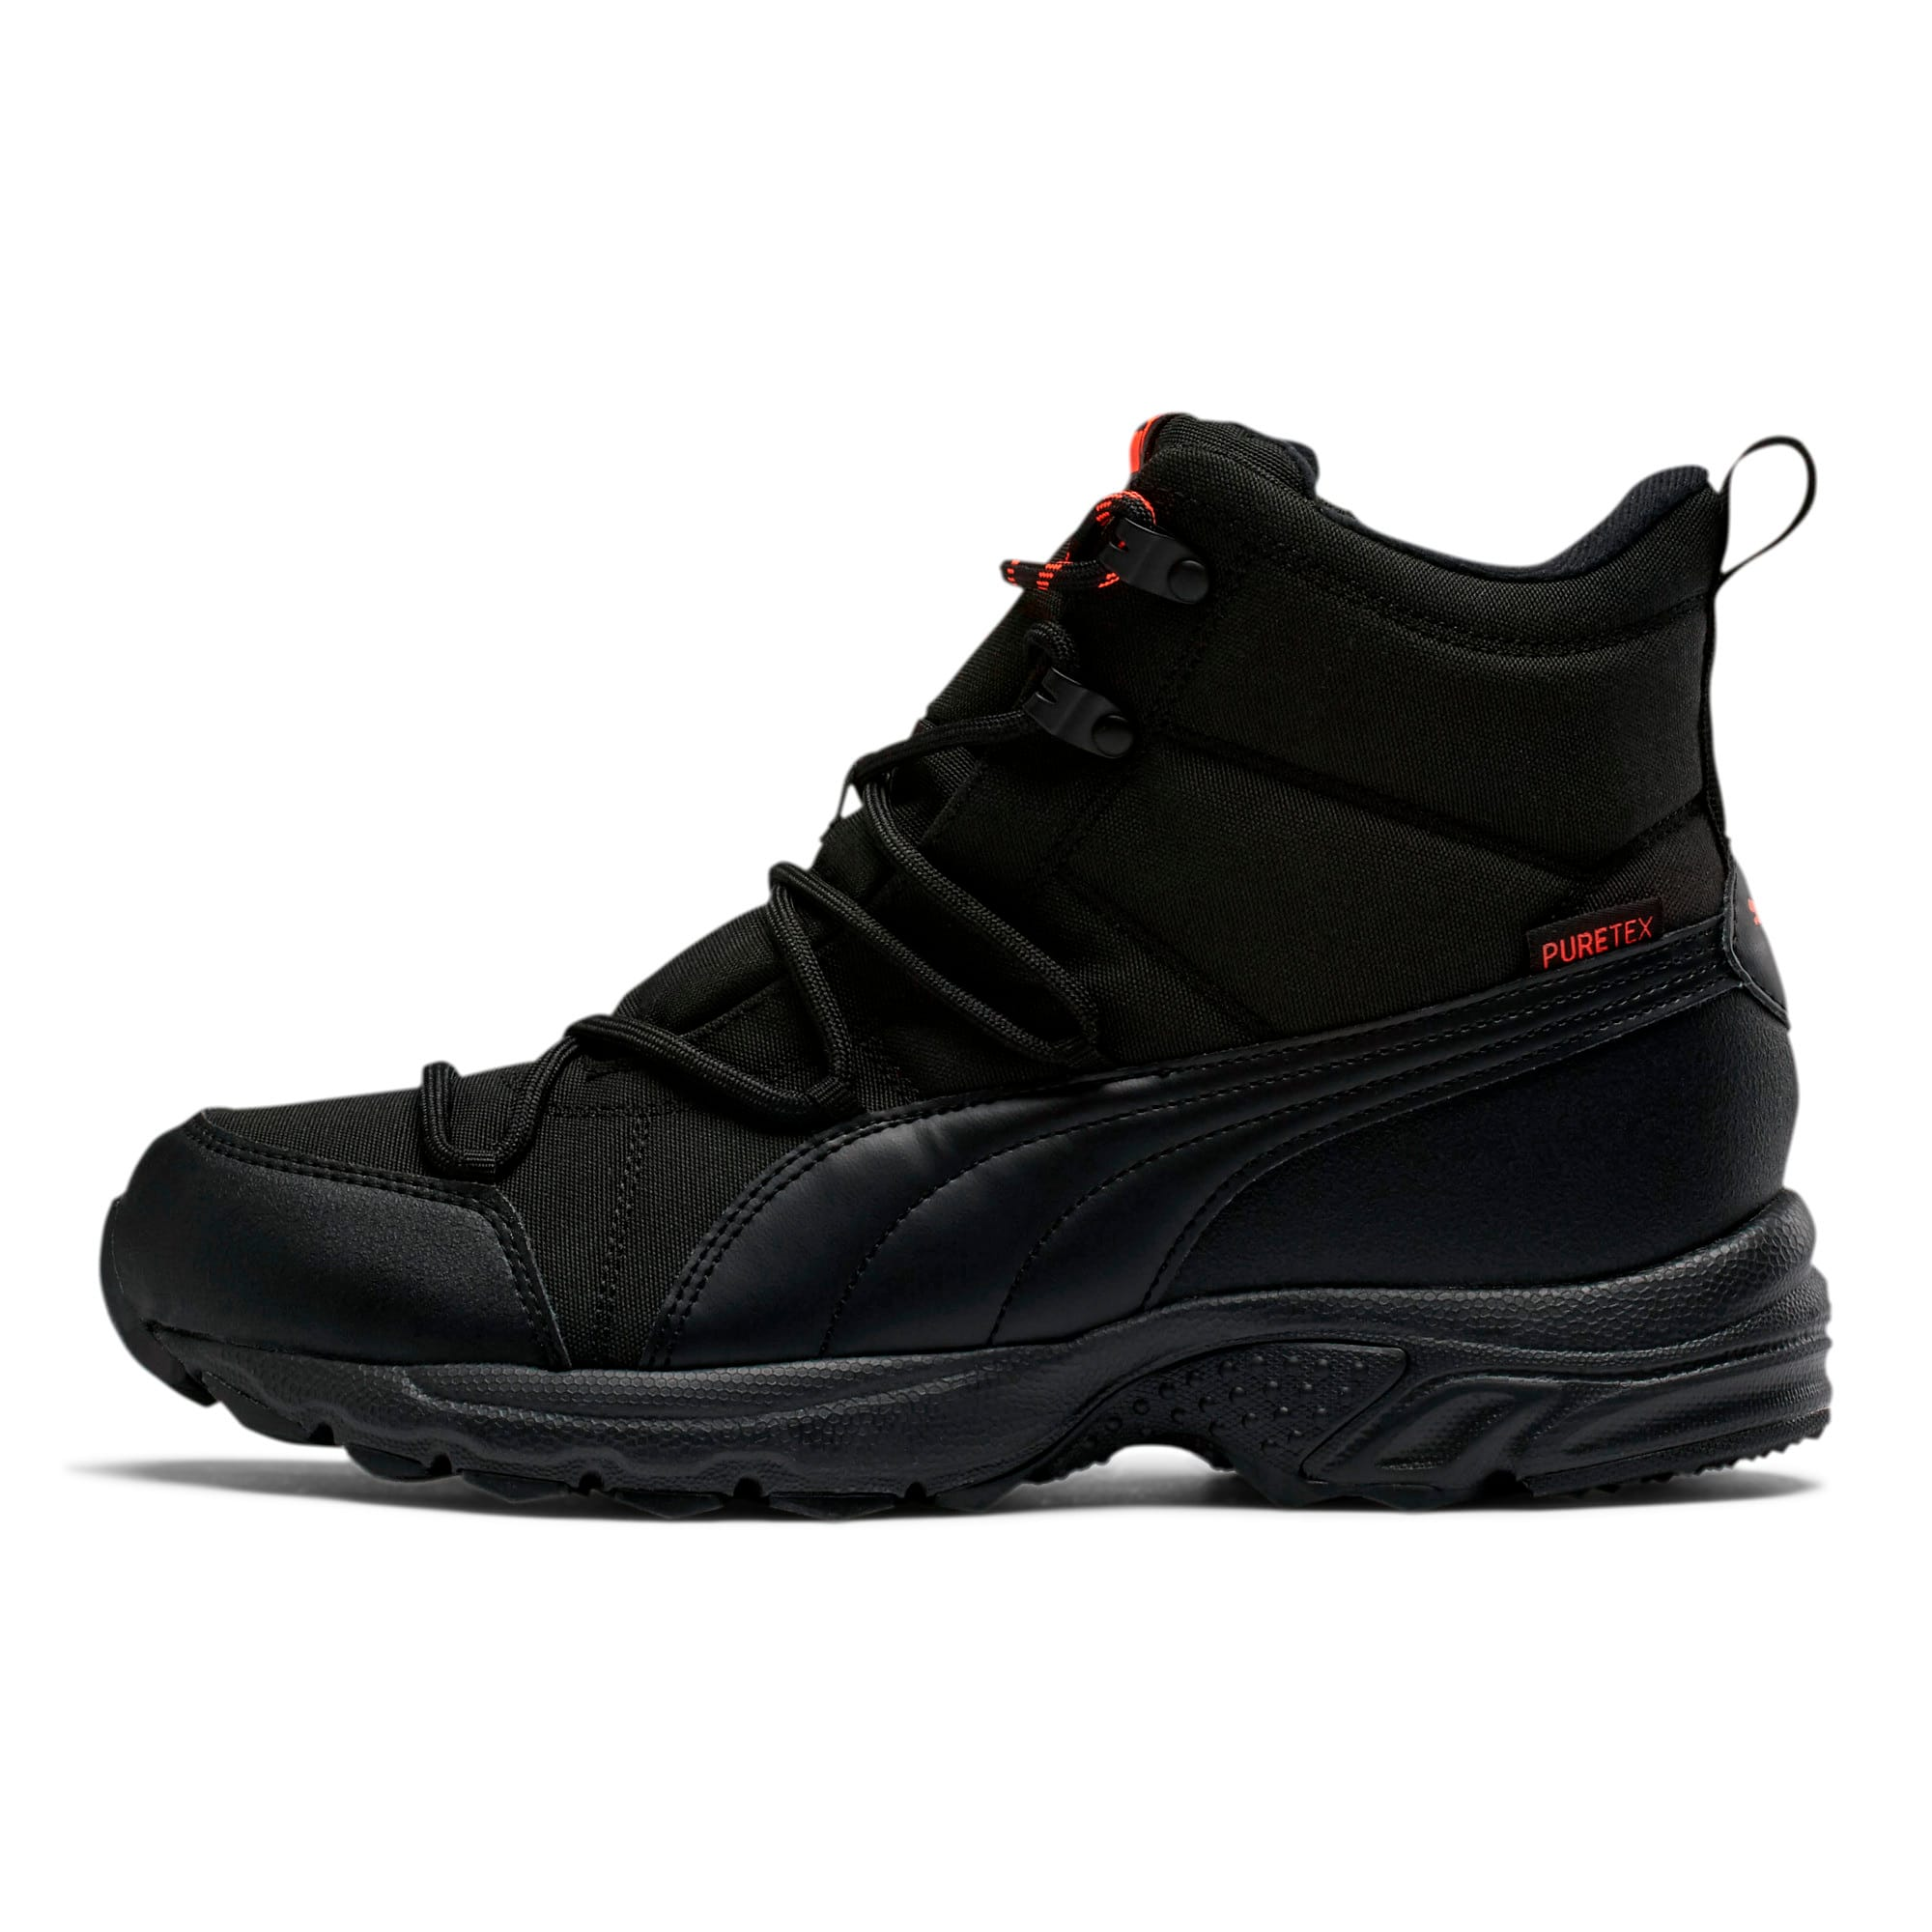 Thumbnail 1 of Axis Trail Winter Boots, Black-Nrgy Red-Whisper White, medium